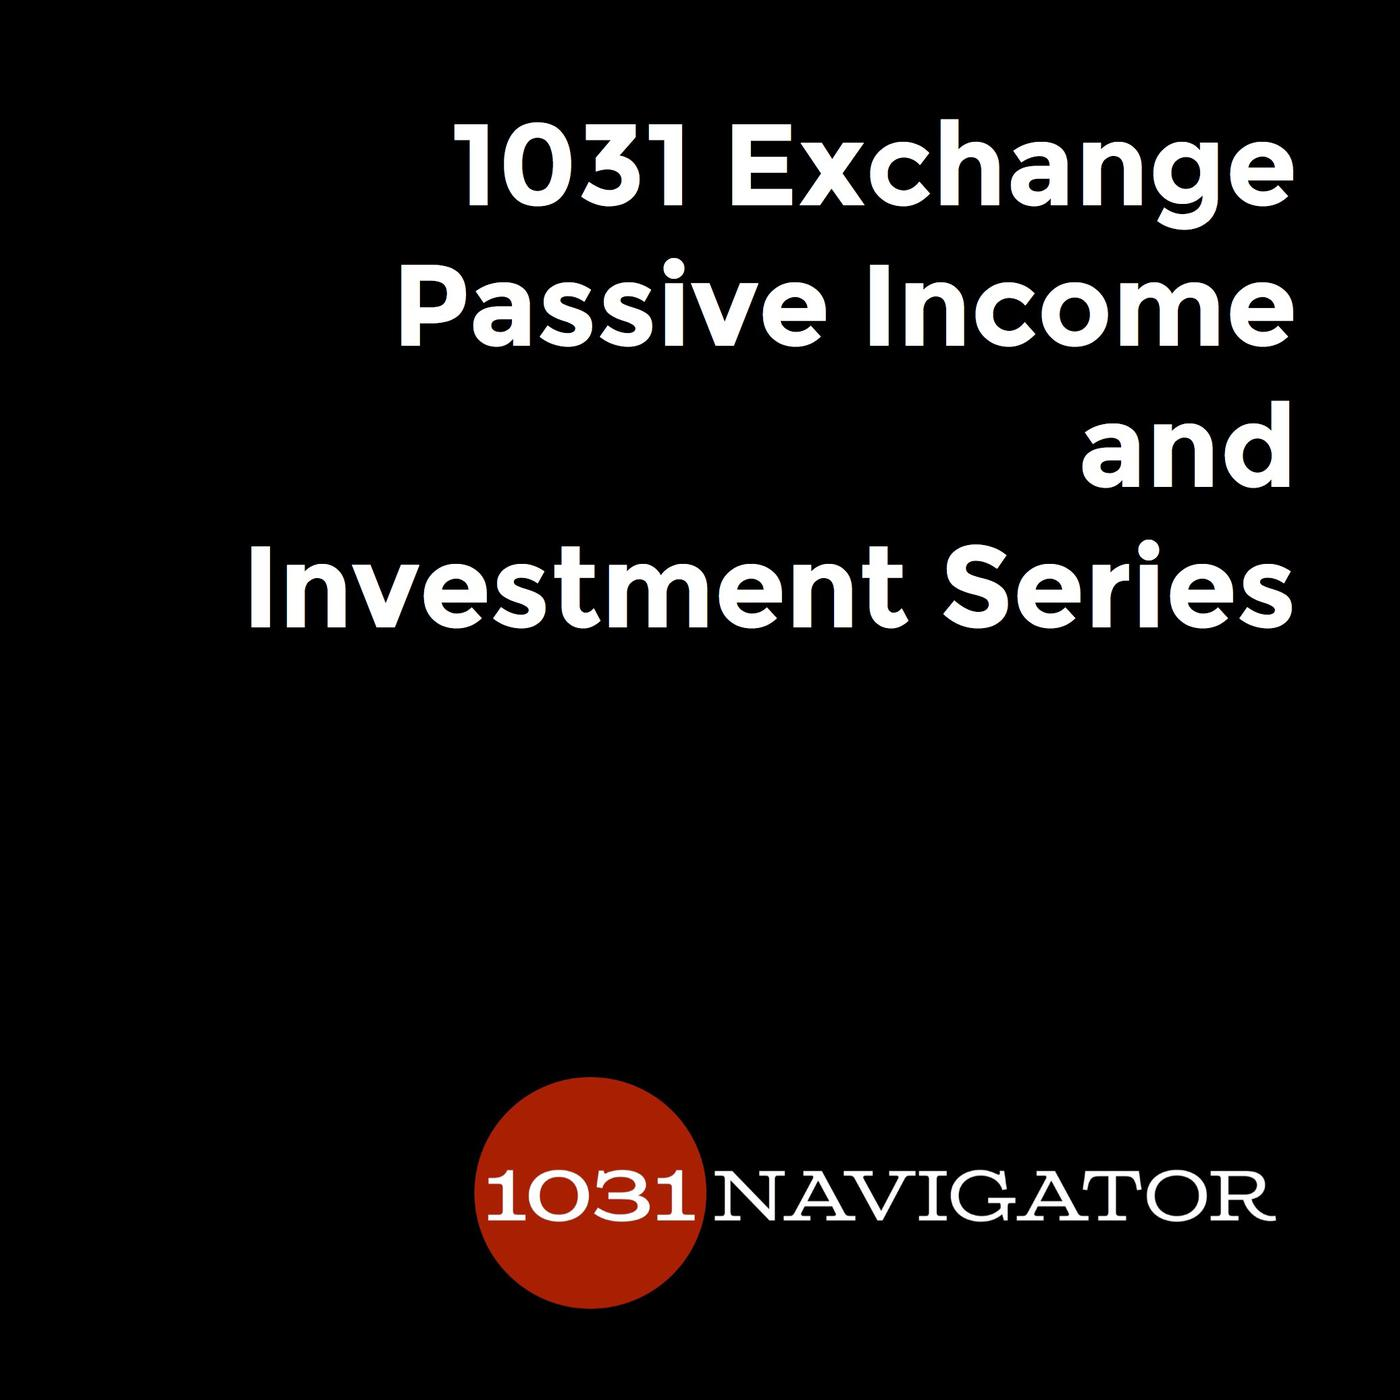 1031 Exchange Passive Income and NNN Investment Series by